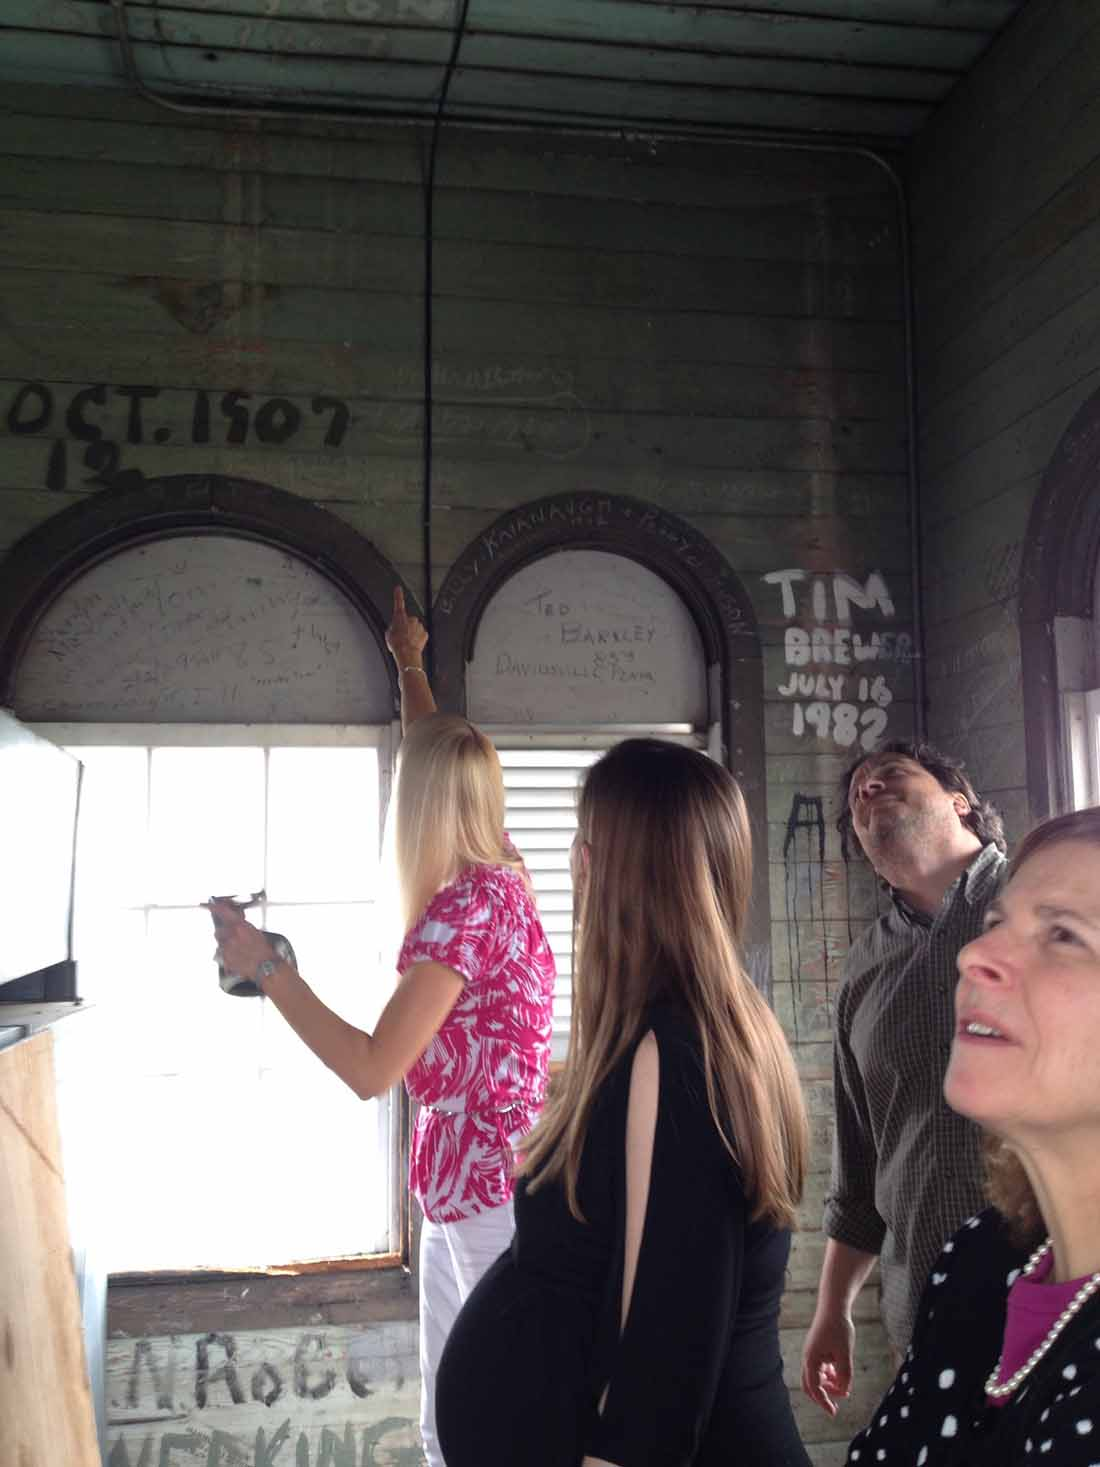 Sherry Chastain, Emily Esworthy, Ryan Williams and Carol Shores read the writing on the walls of the cupola of Old Main.